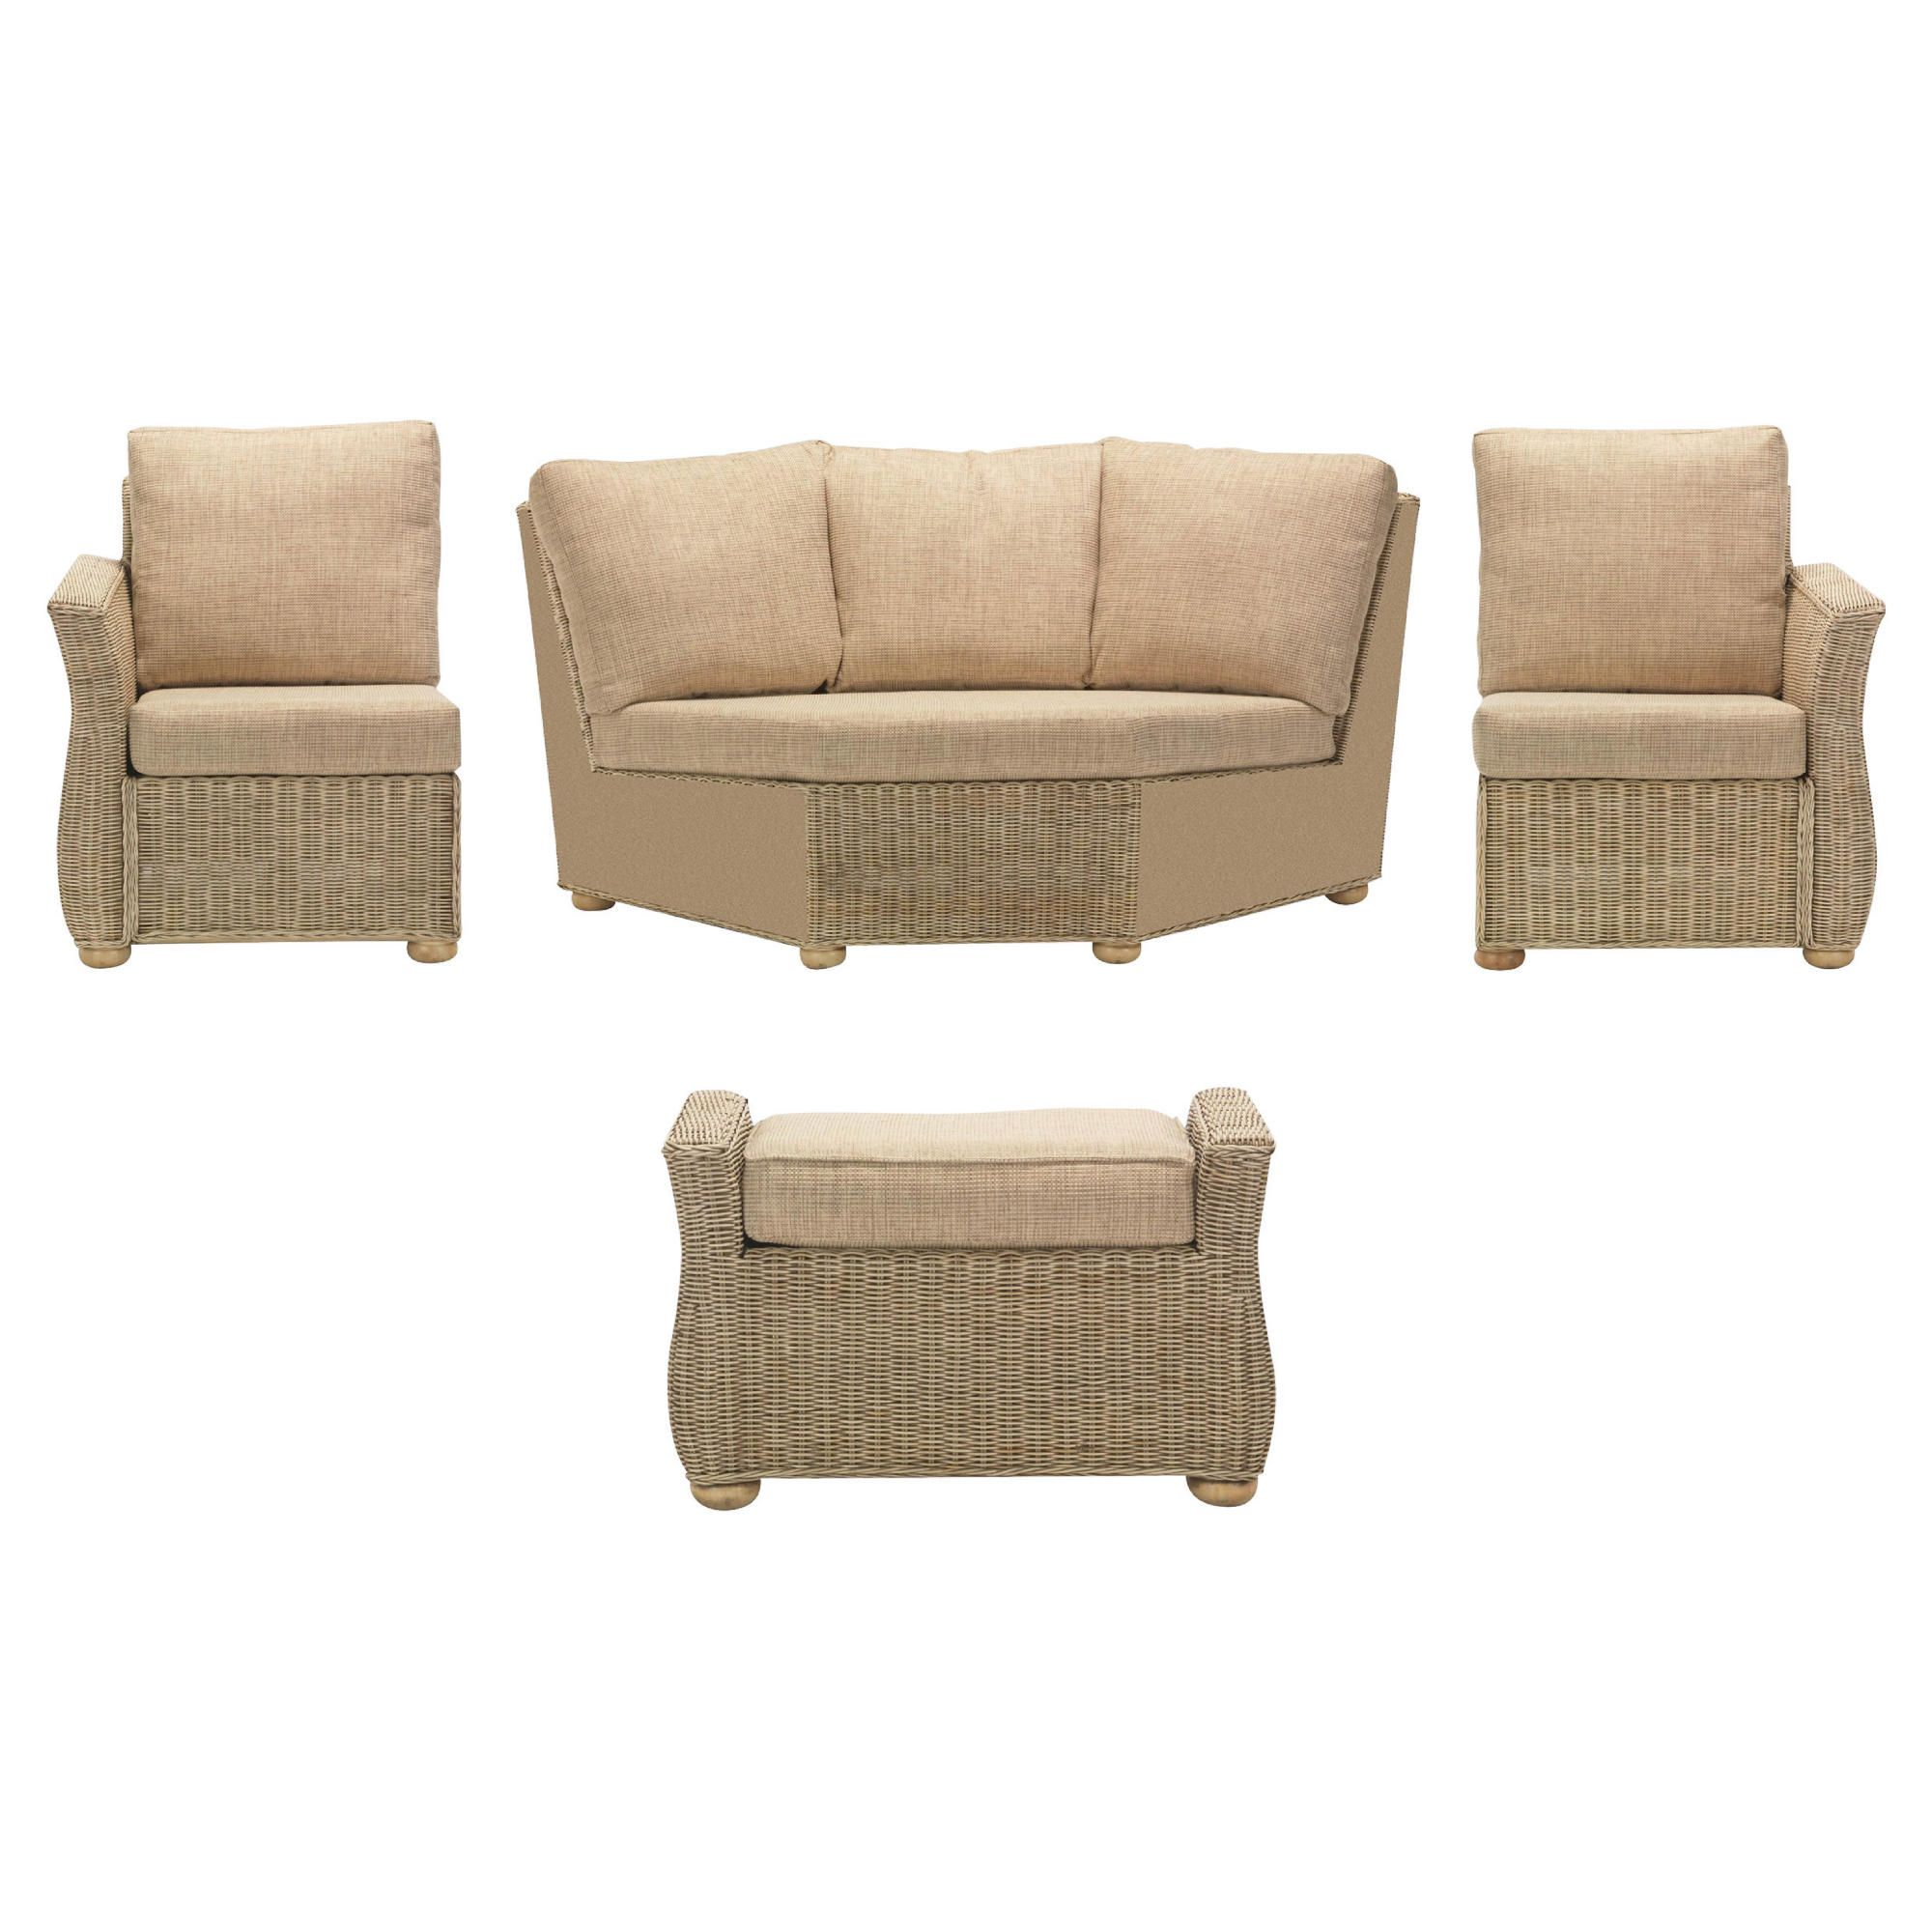 Corsica 4 Piece Suite Conservatory Set (Left, Right, Corner & Footstool) at Tesco Direct